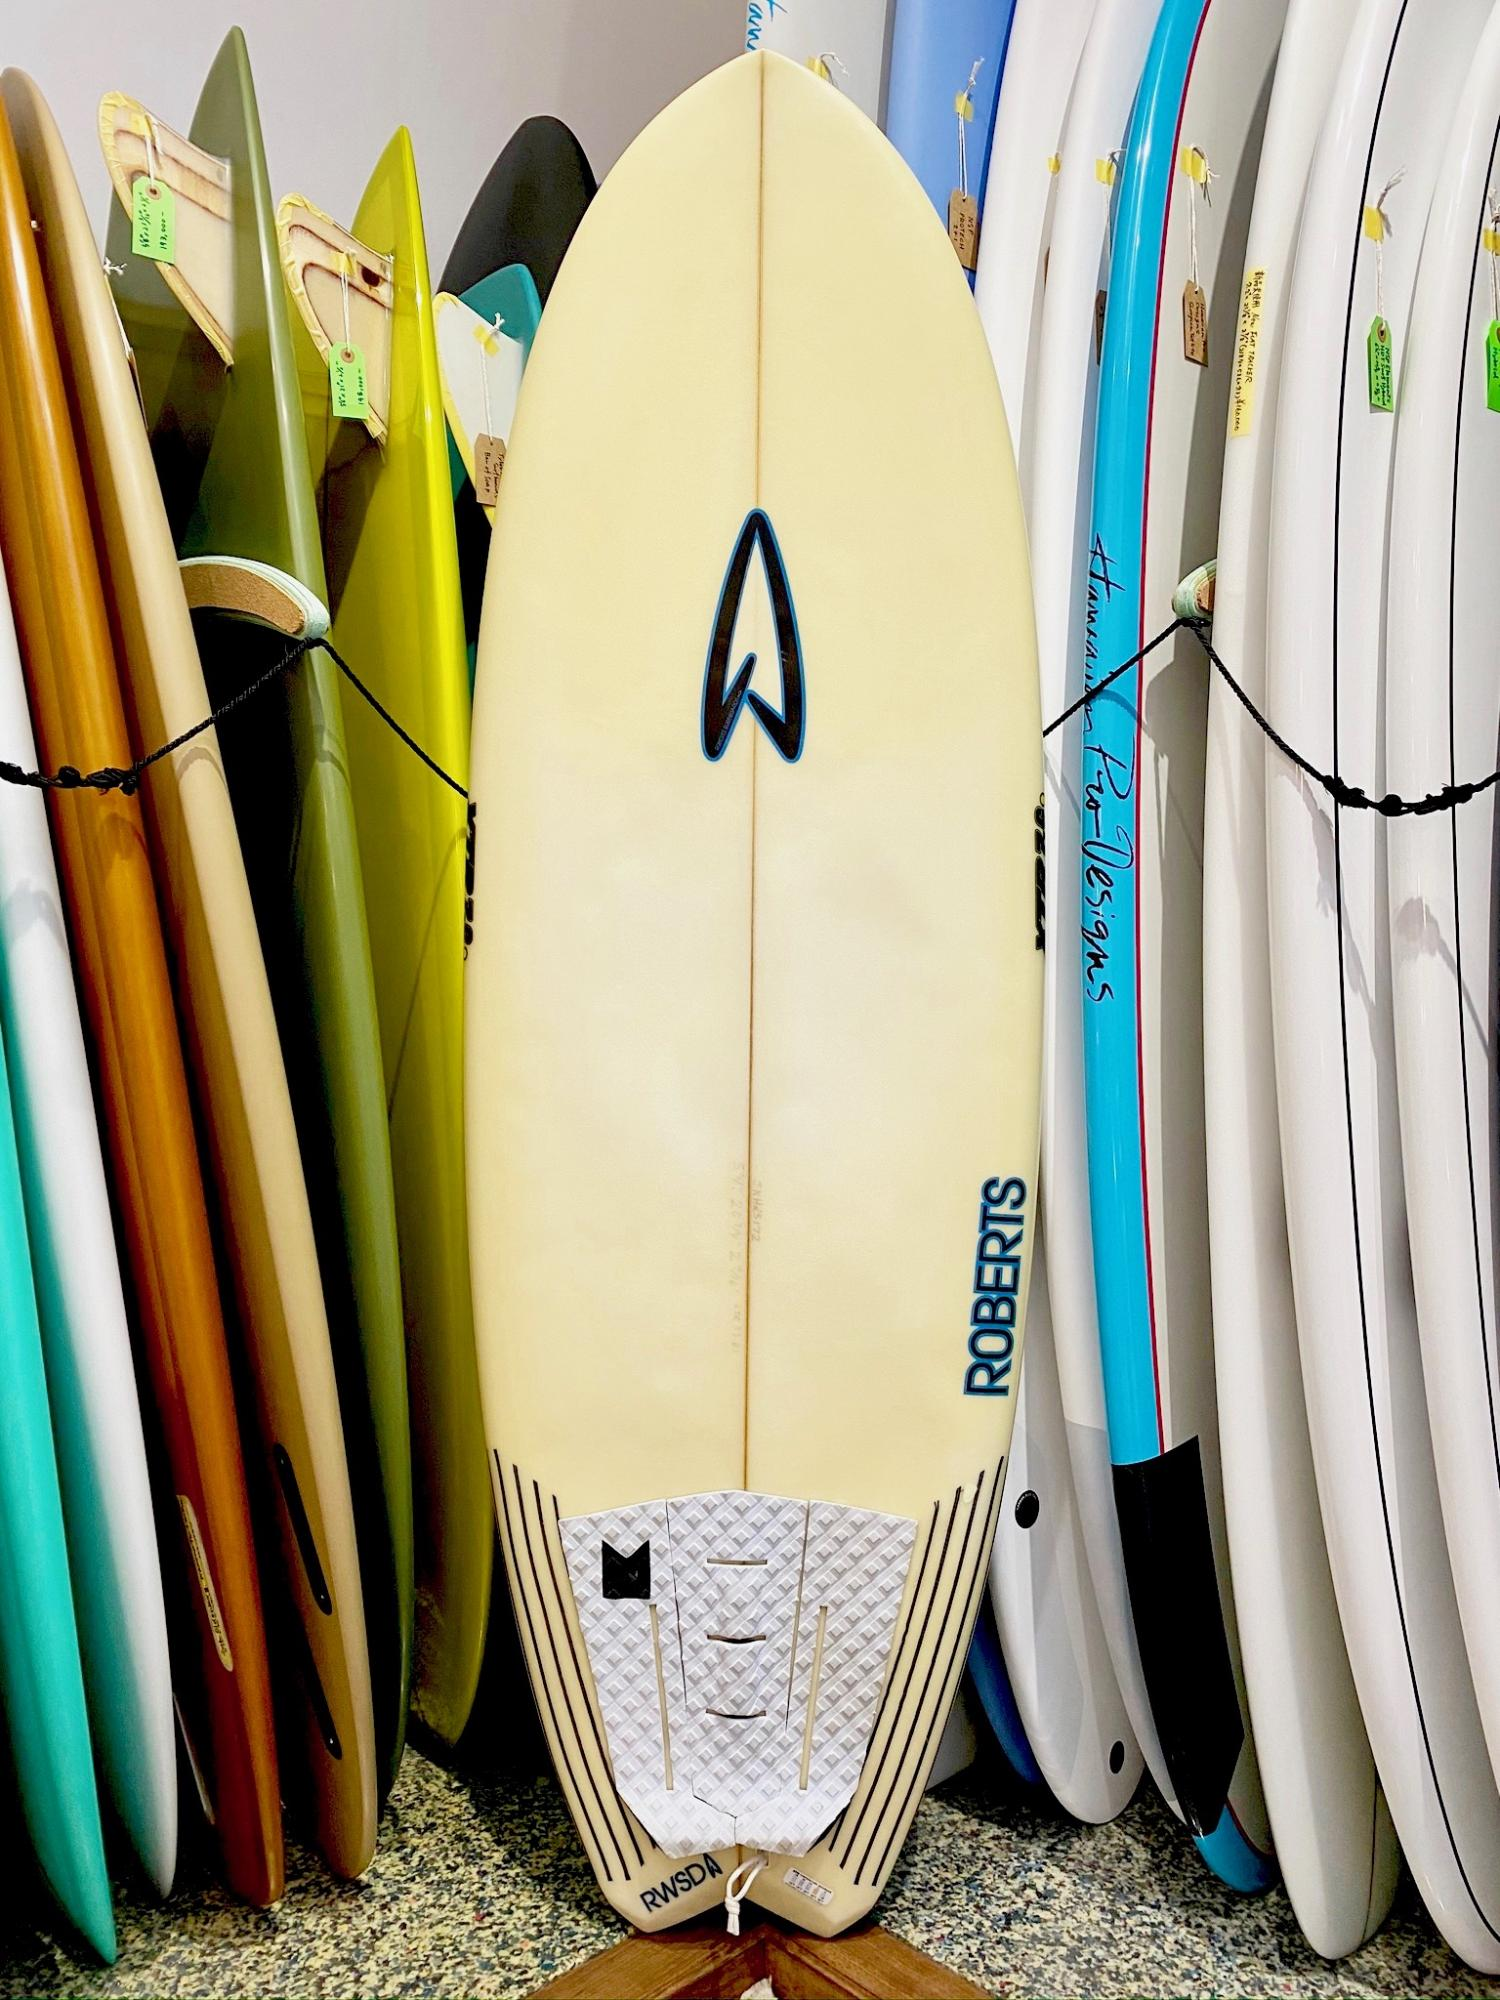 USED BOARDS(Roberts Pool Toy 5.4)